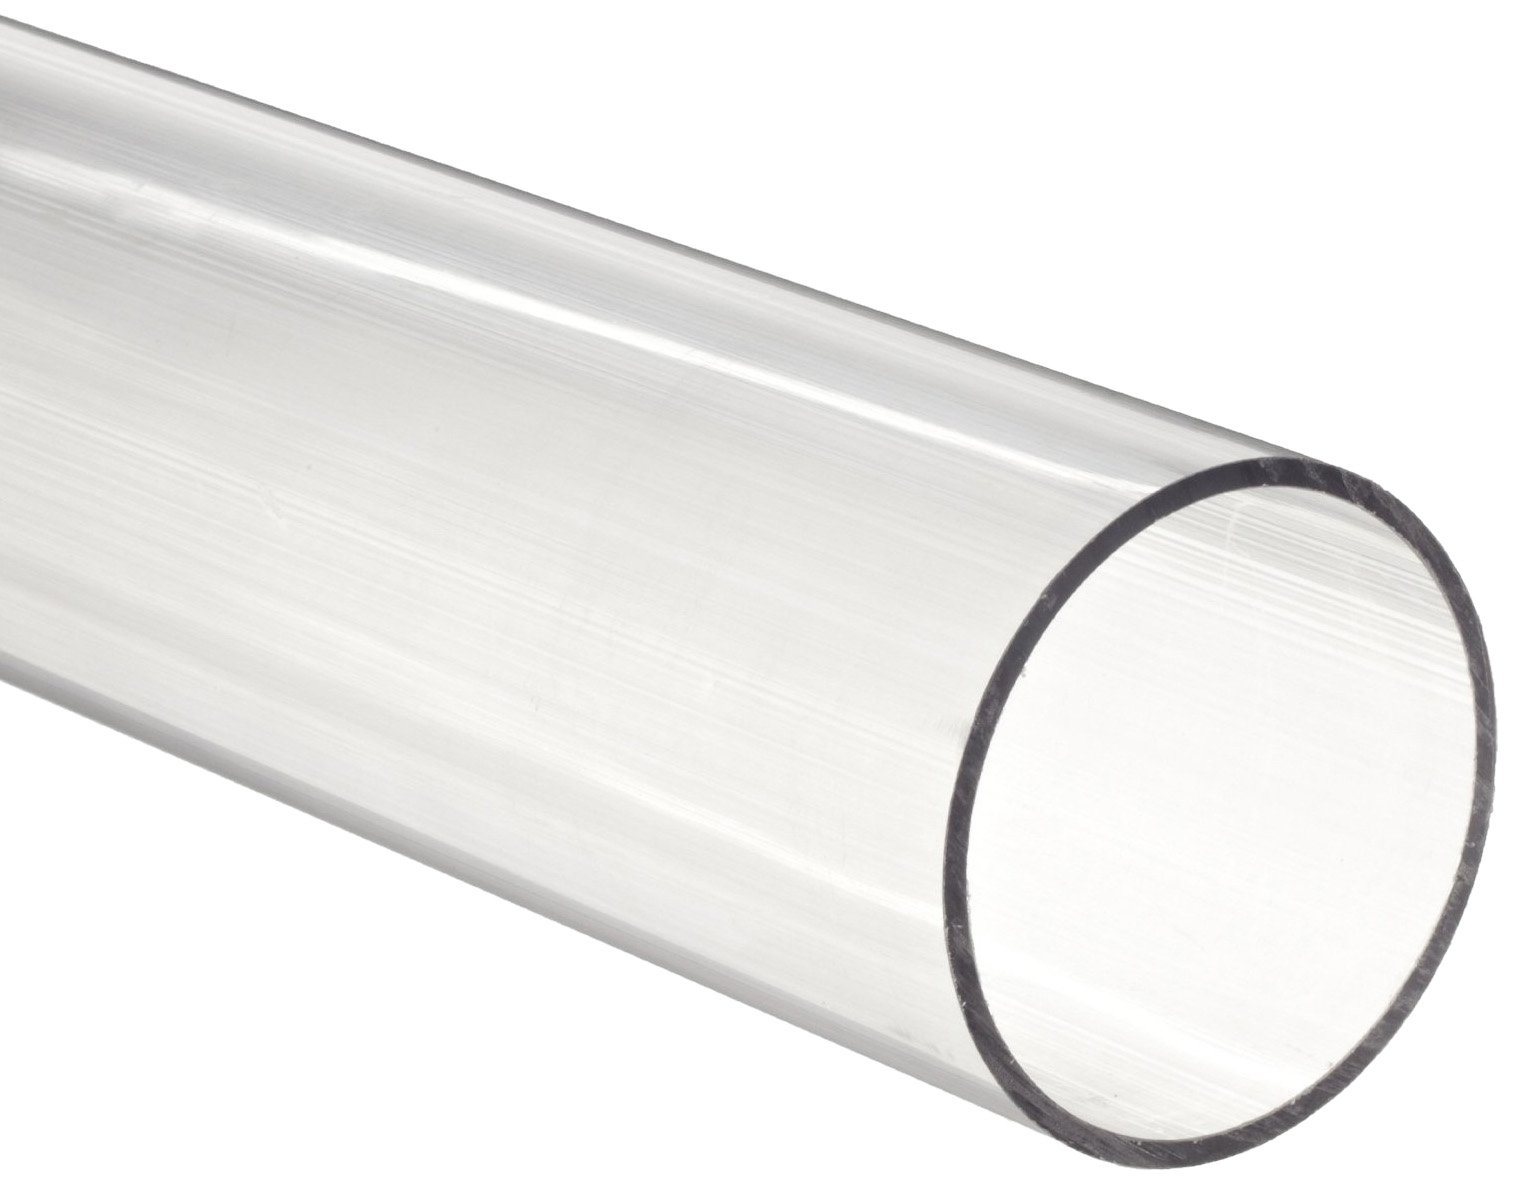 Polycarbonate Tubing, 2 1/4'' ID x 2 1/2'' OD x 1/8'' Wall, Clear Color 36'' L